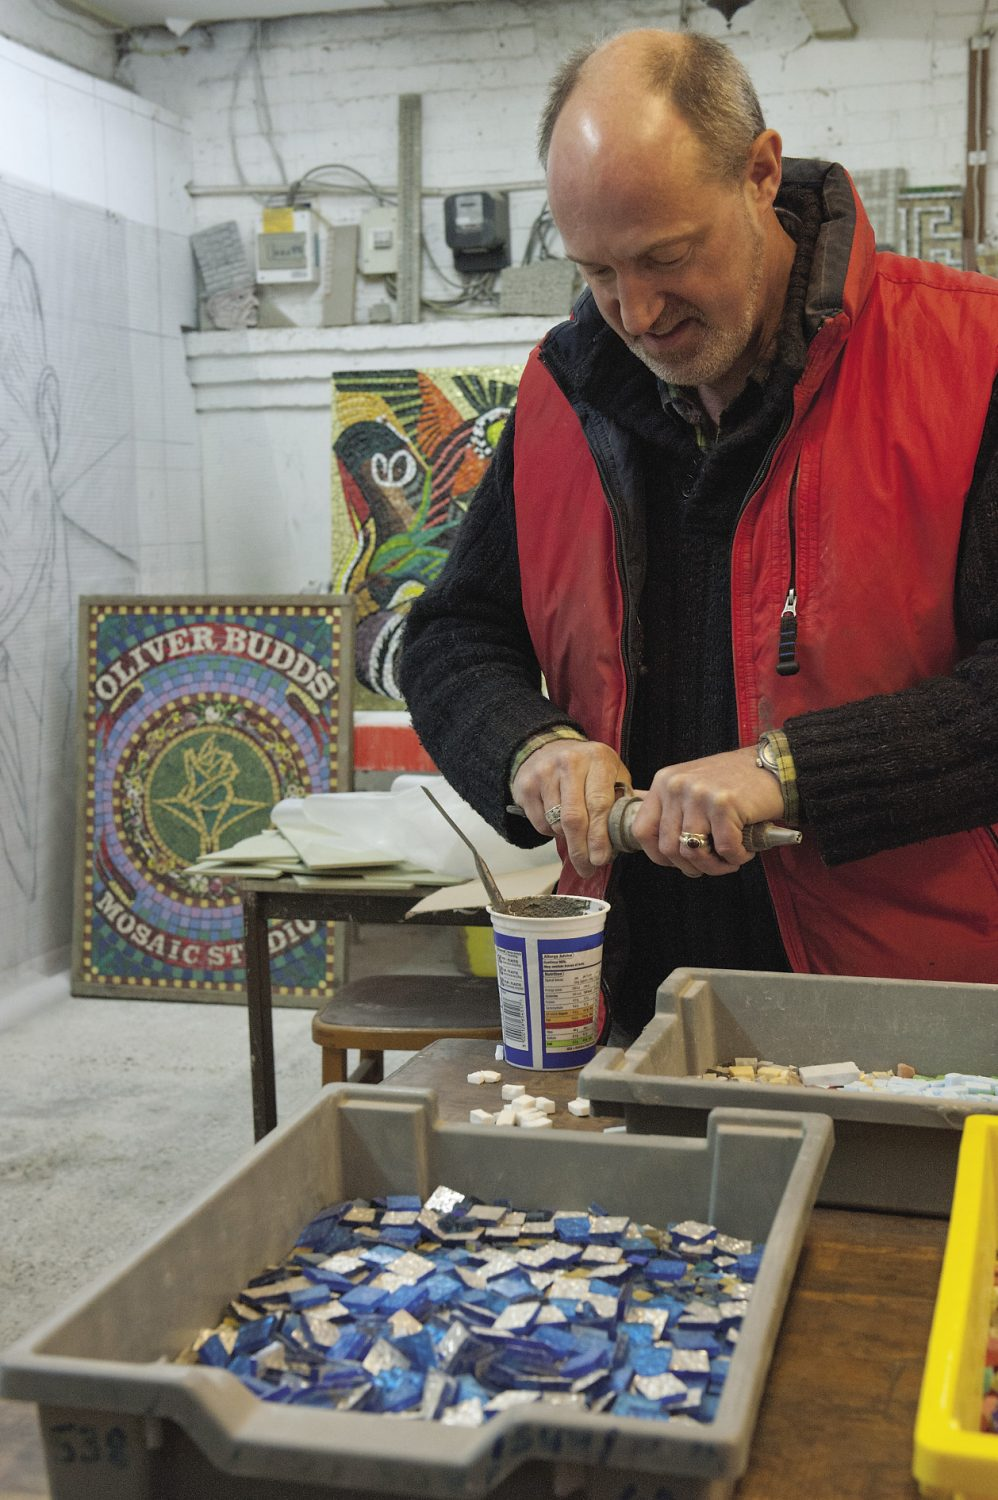 Oliver at work in his Bodiam-based studio. He is currently working on the restoration of the JF Kennedy memorial mosaic that was in Birmingham. Commissioned by the city's Irish Catholic community some time after Kennedy's assassination in '63, is was originally unveiled by his father in 1969